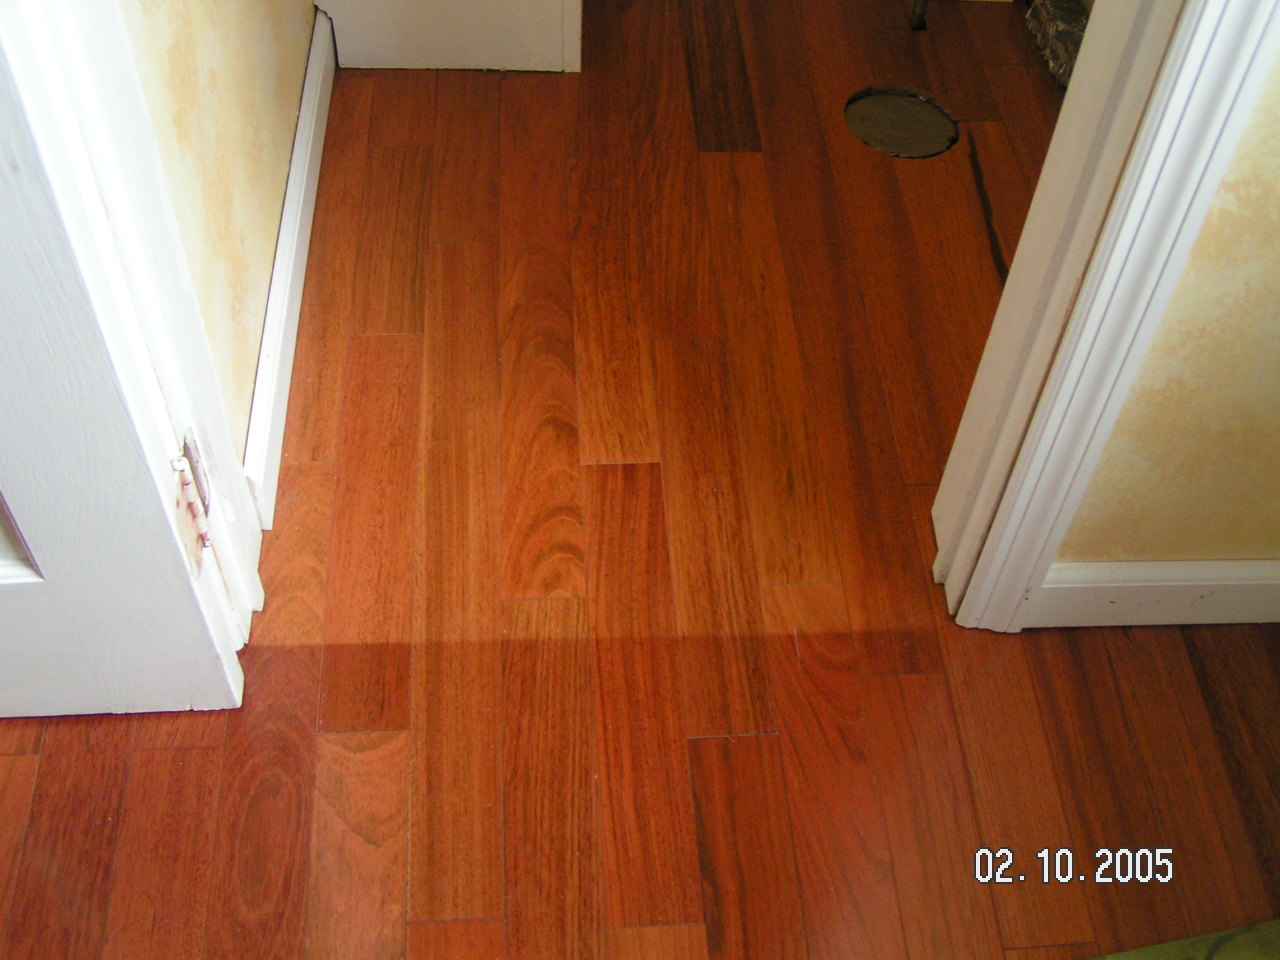 Wood flooring color change - Wood floor colors ...